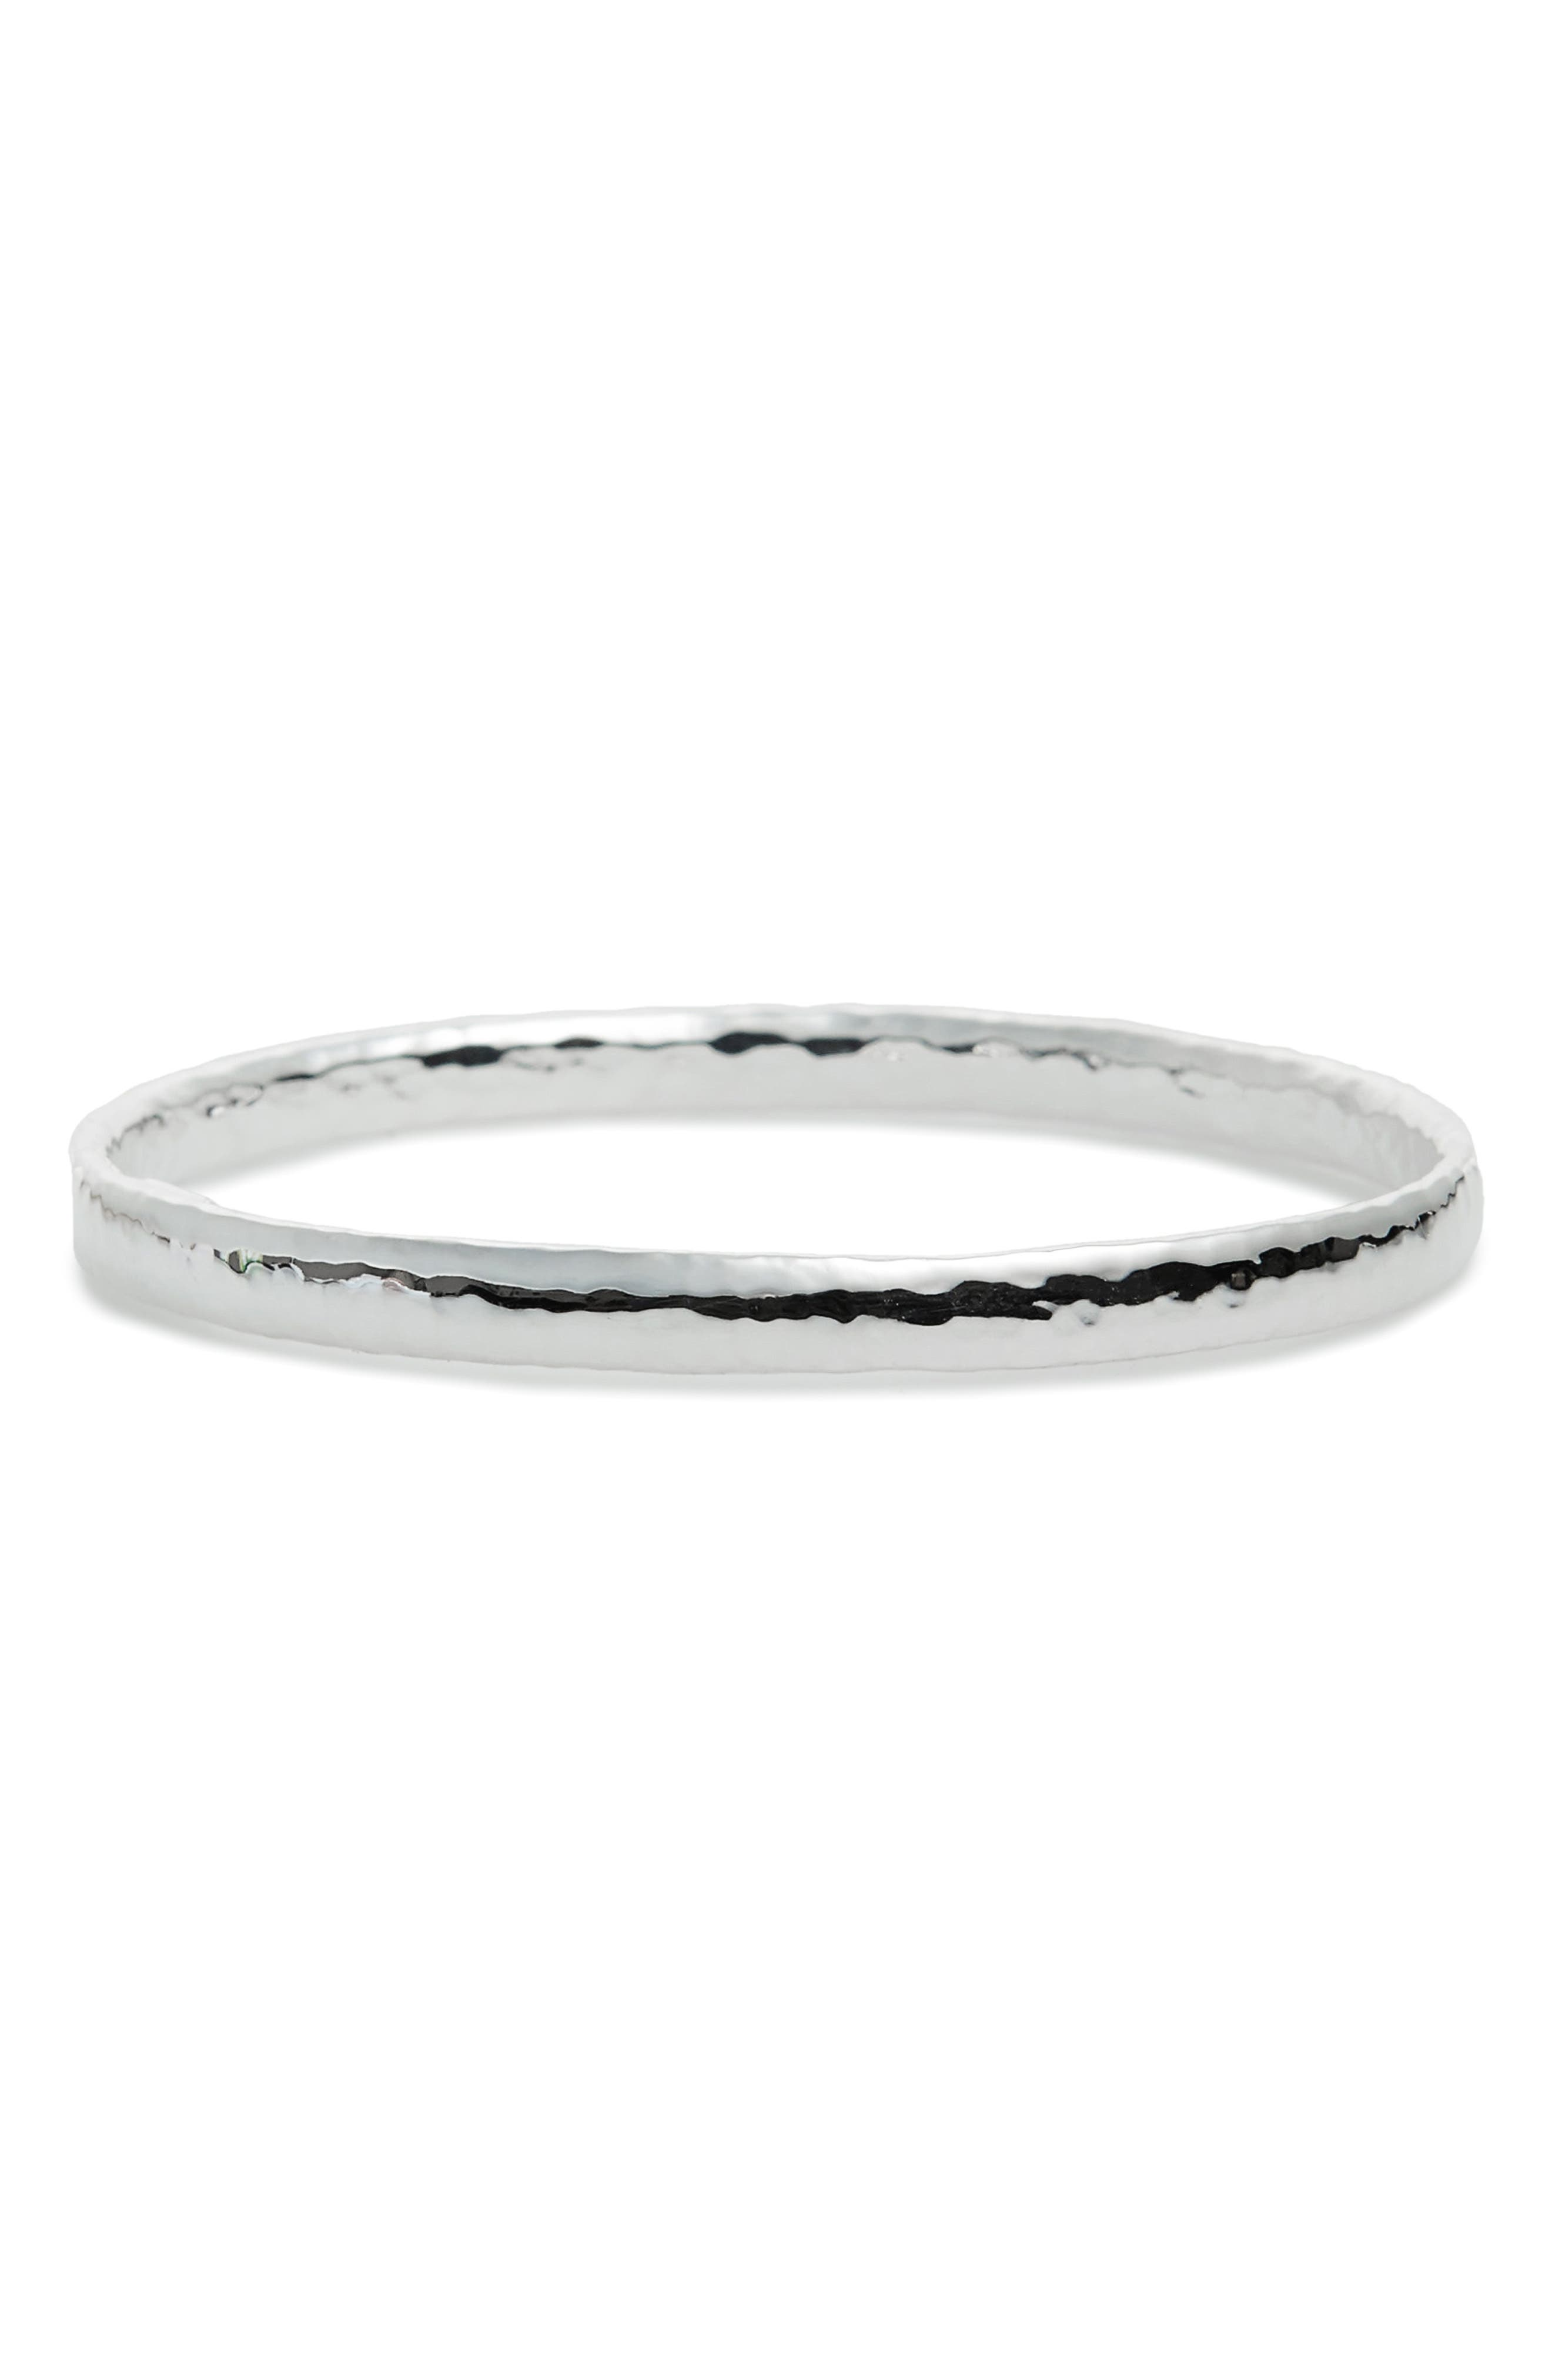 Main Image - Ippolita 'Glamazon' Sterling Silver Bangle